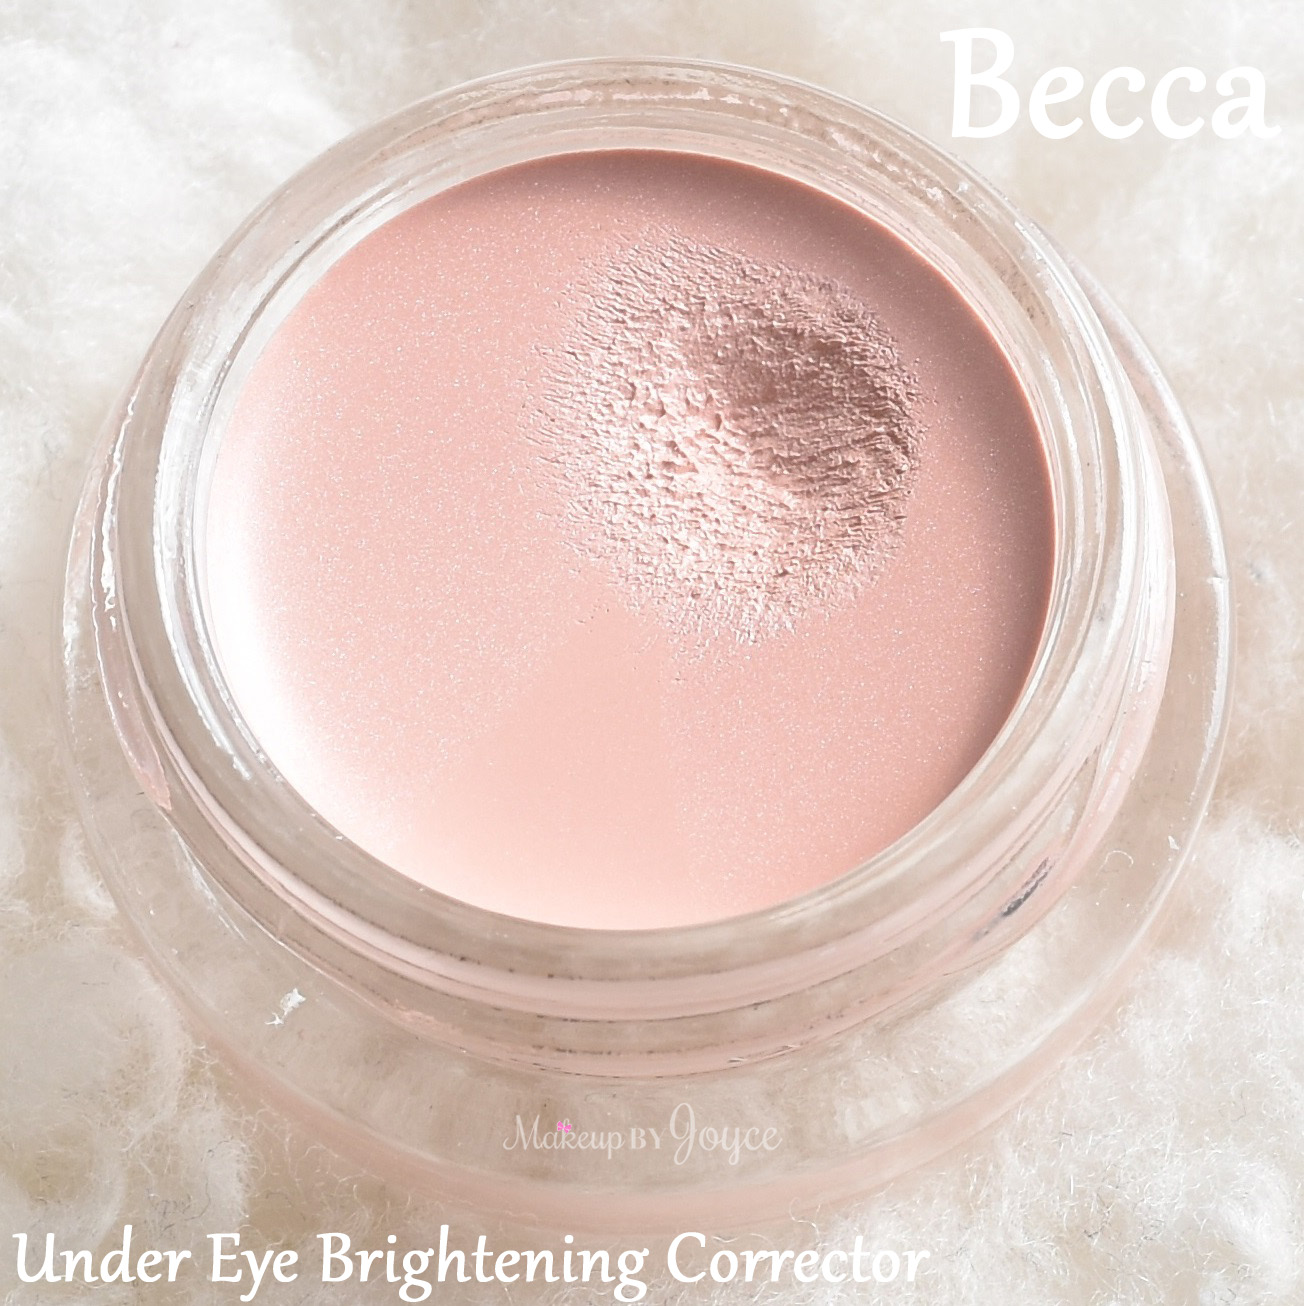 Under Eye Brightening Corrector by BECCA #19